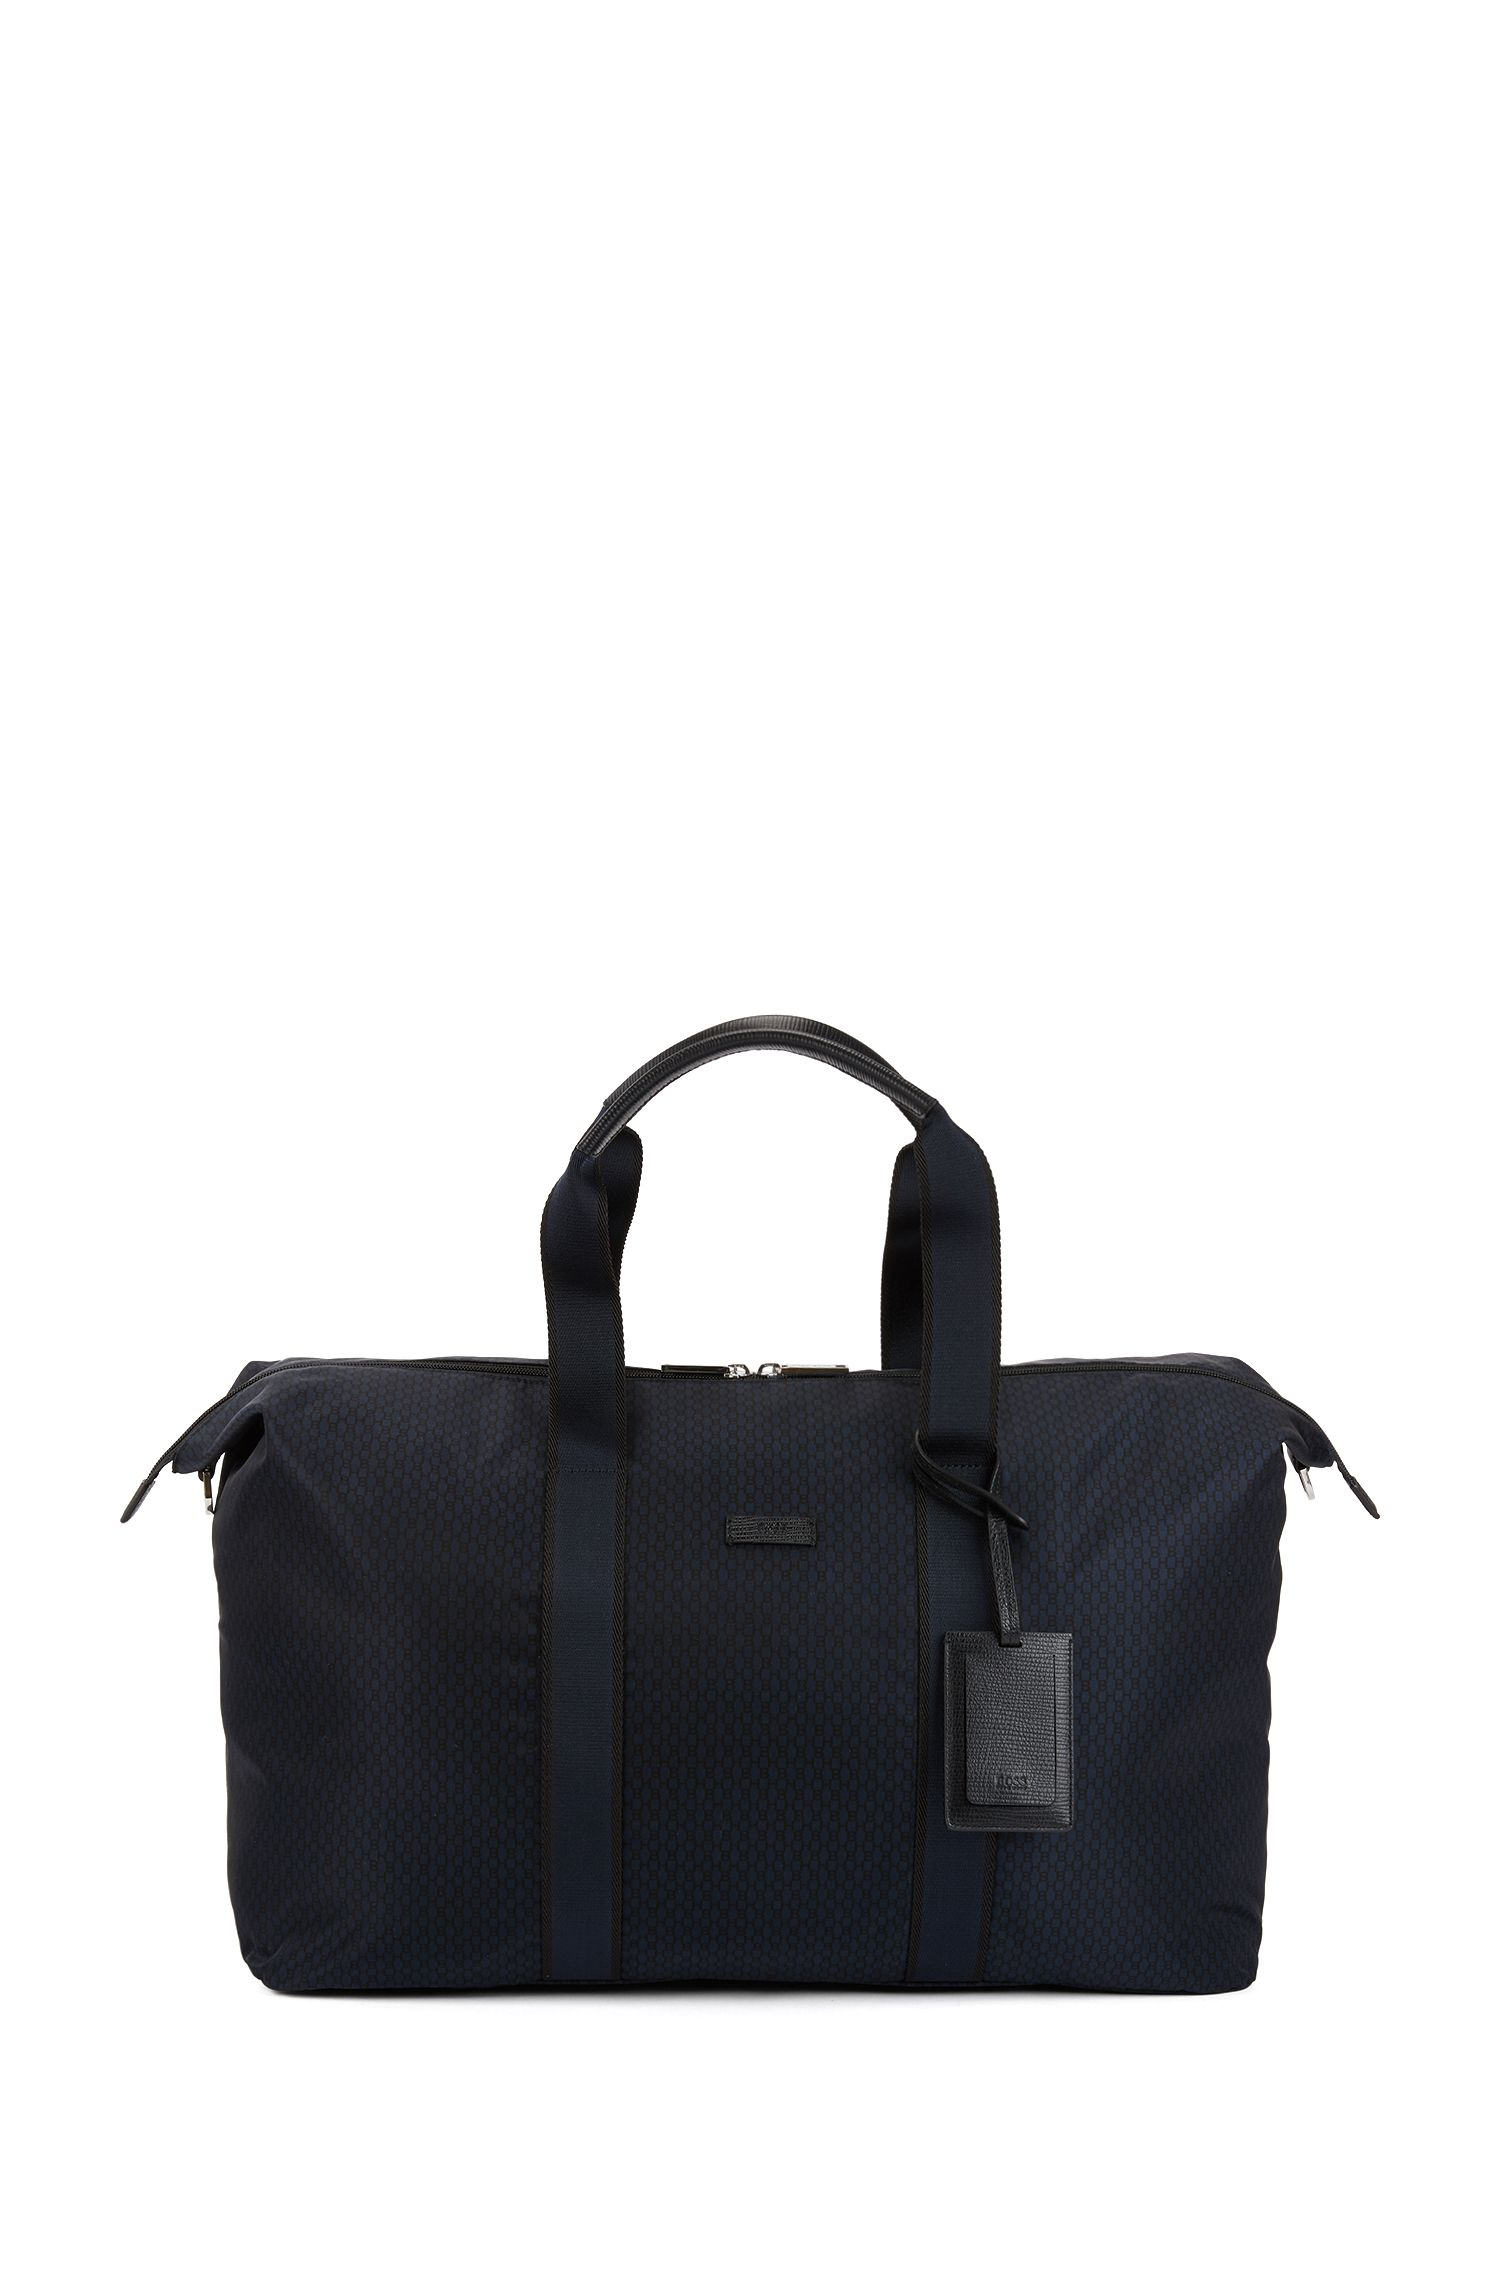 Holdall with all-over monogram print and leather trims, Patterned